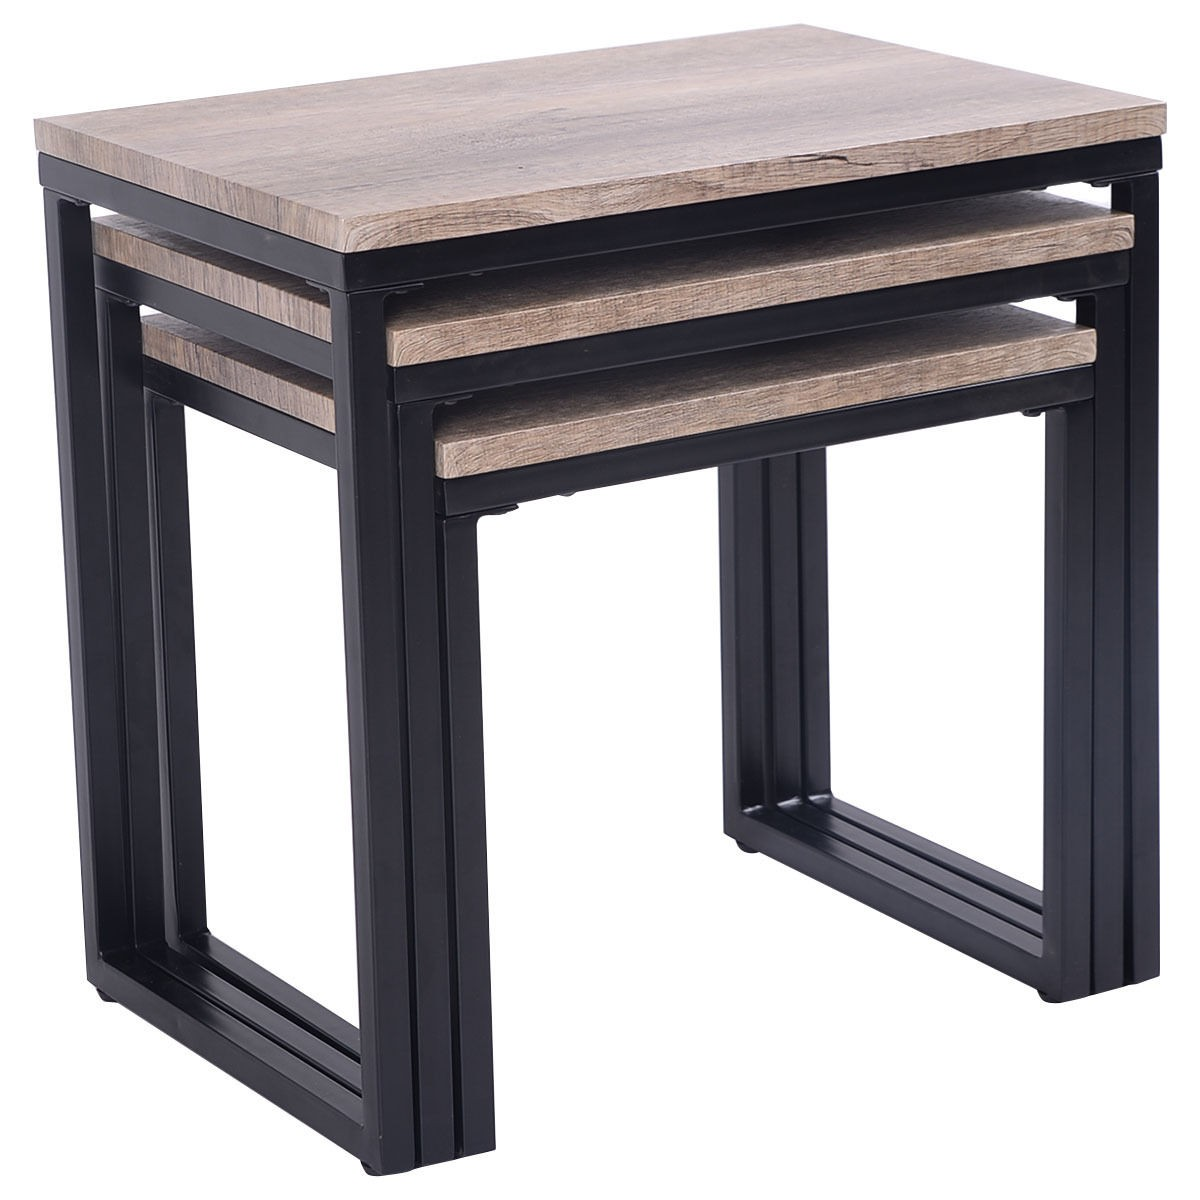 Stacking End Tables 3 Piece Nesting Coffee And End Table Set Wood Modern Living